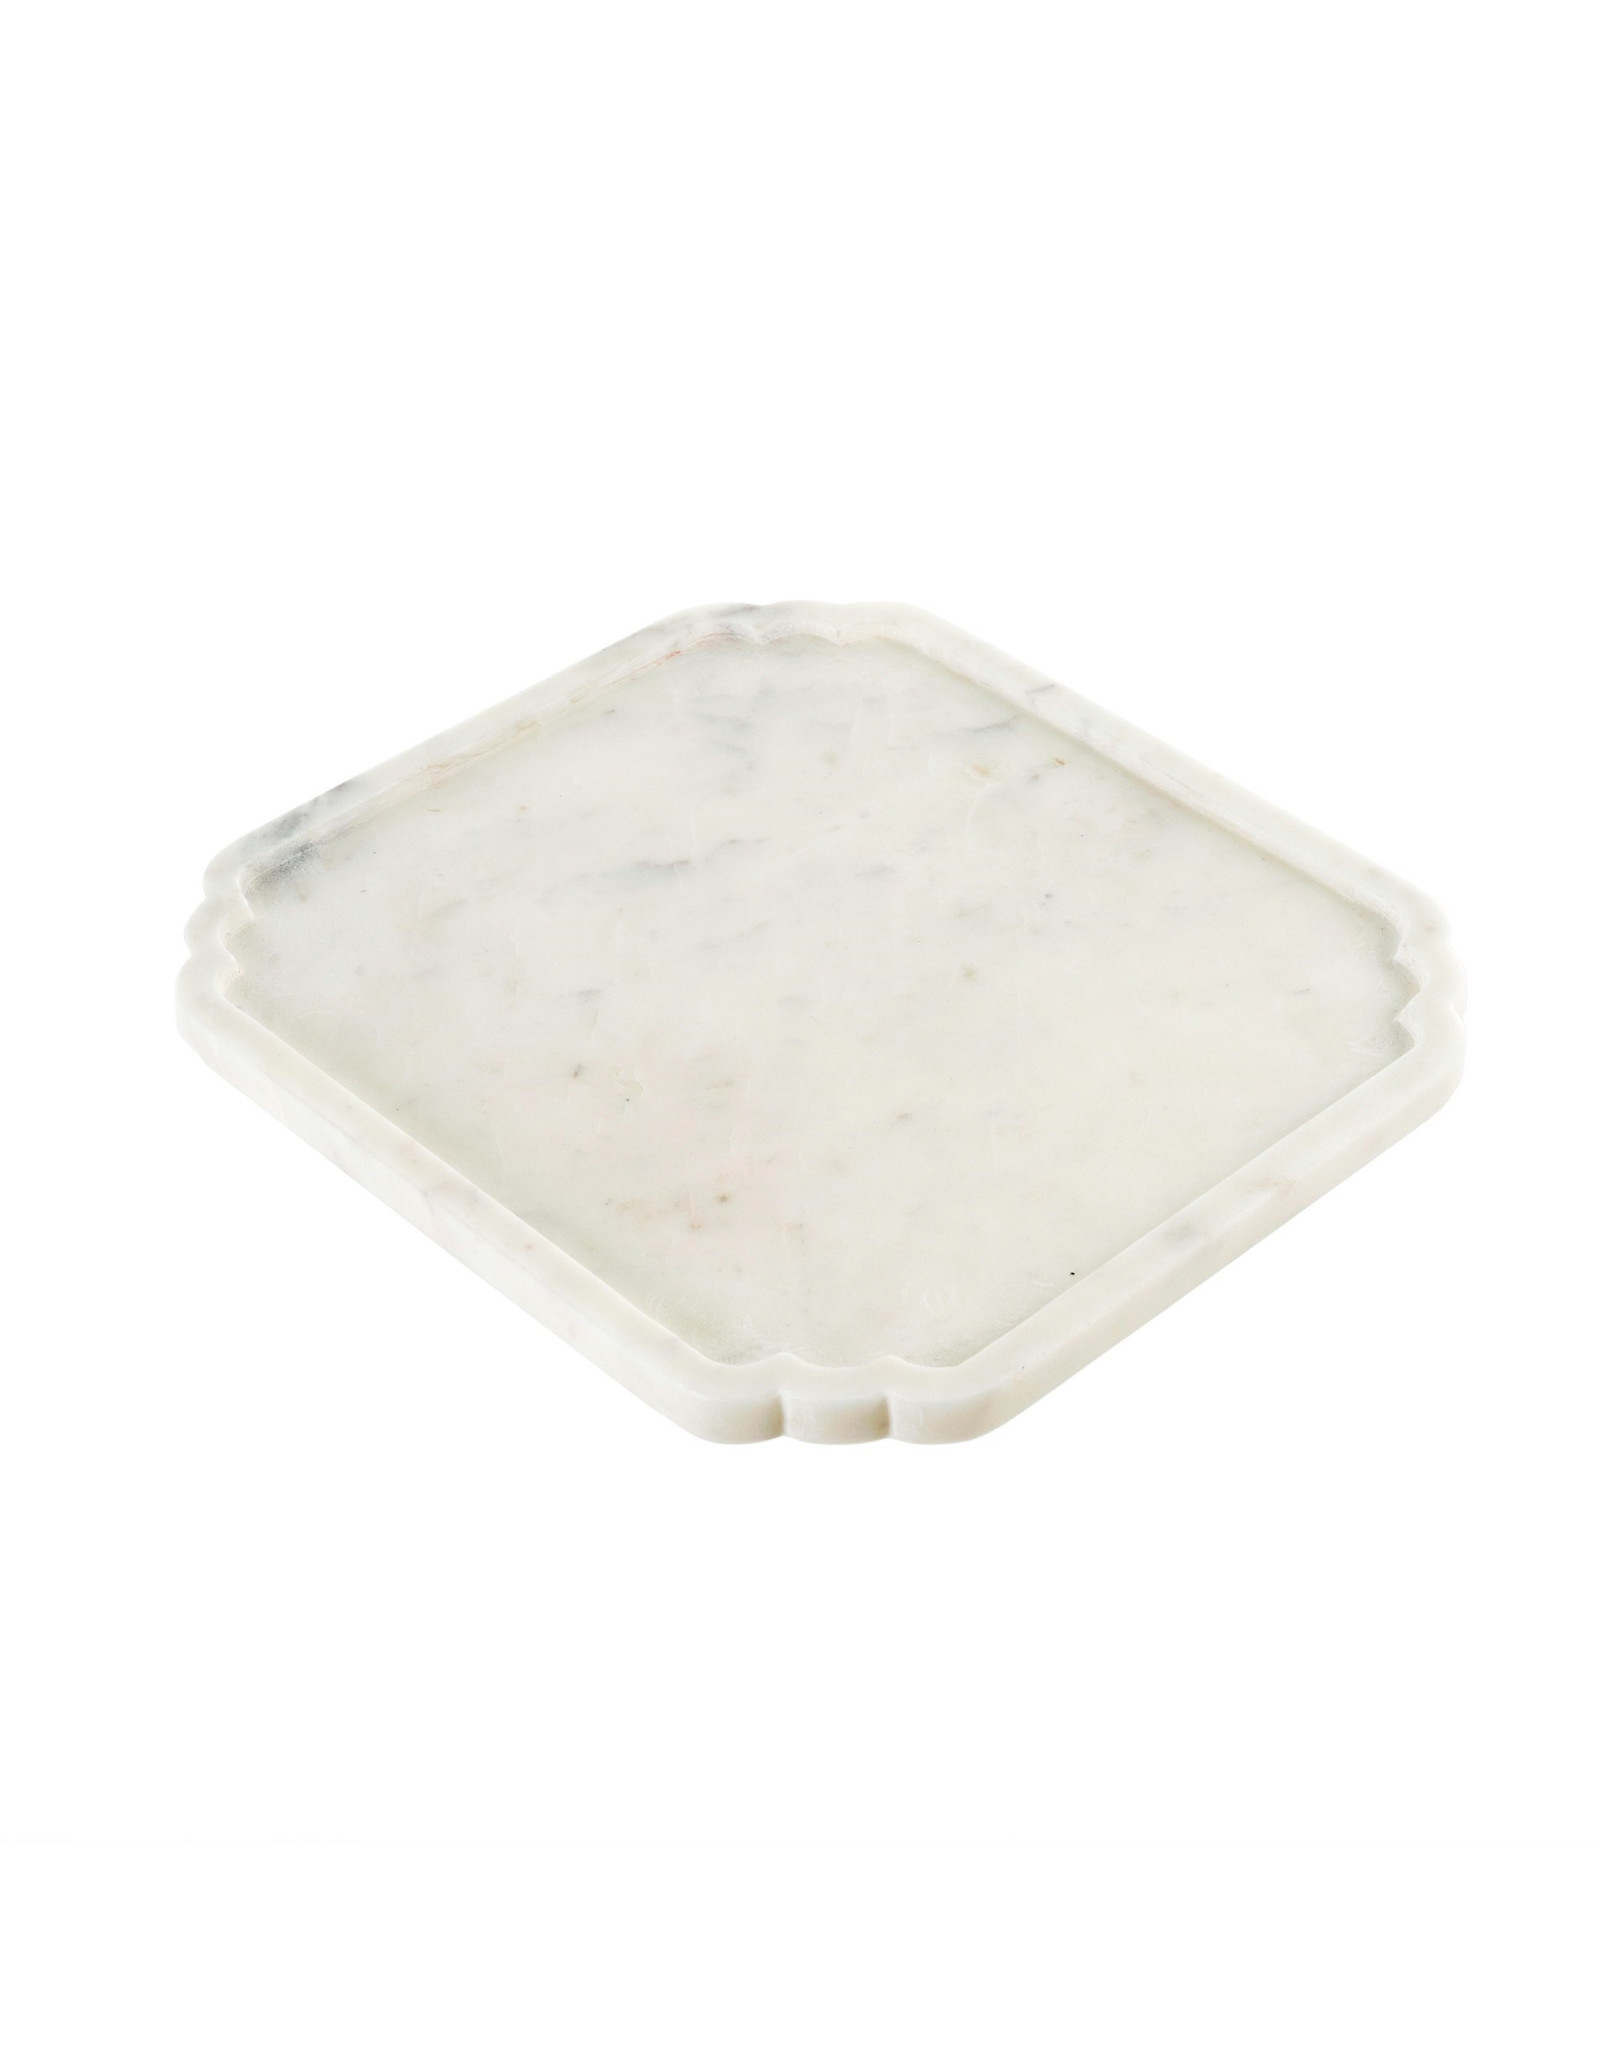 Serendipity Marble Tray - Square